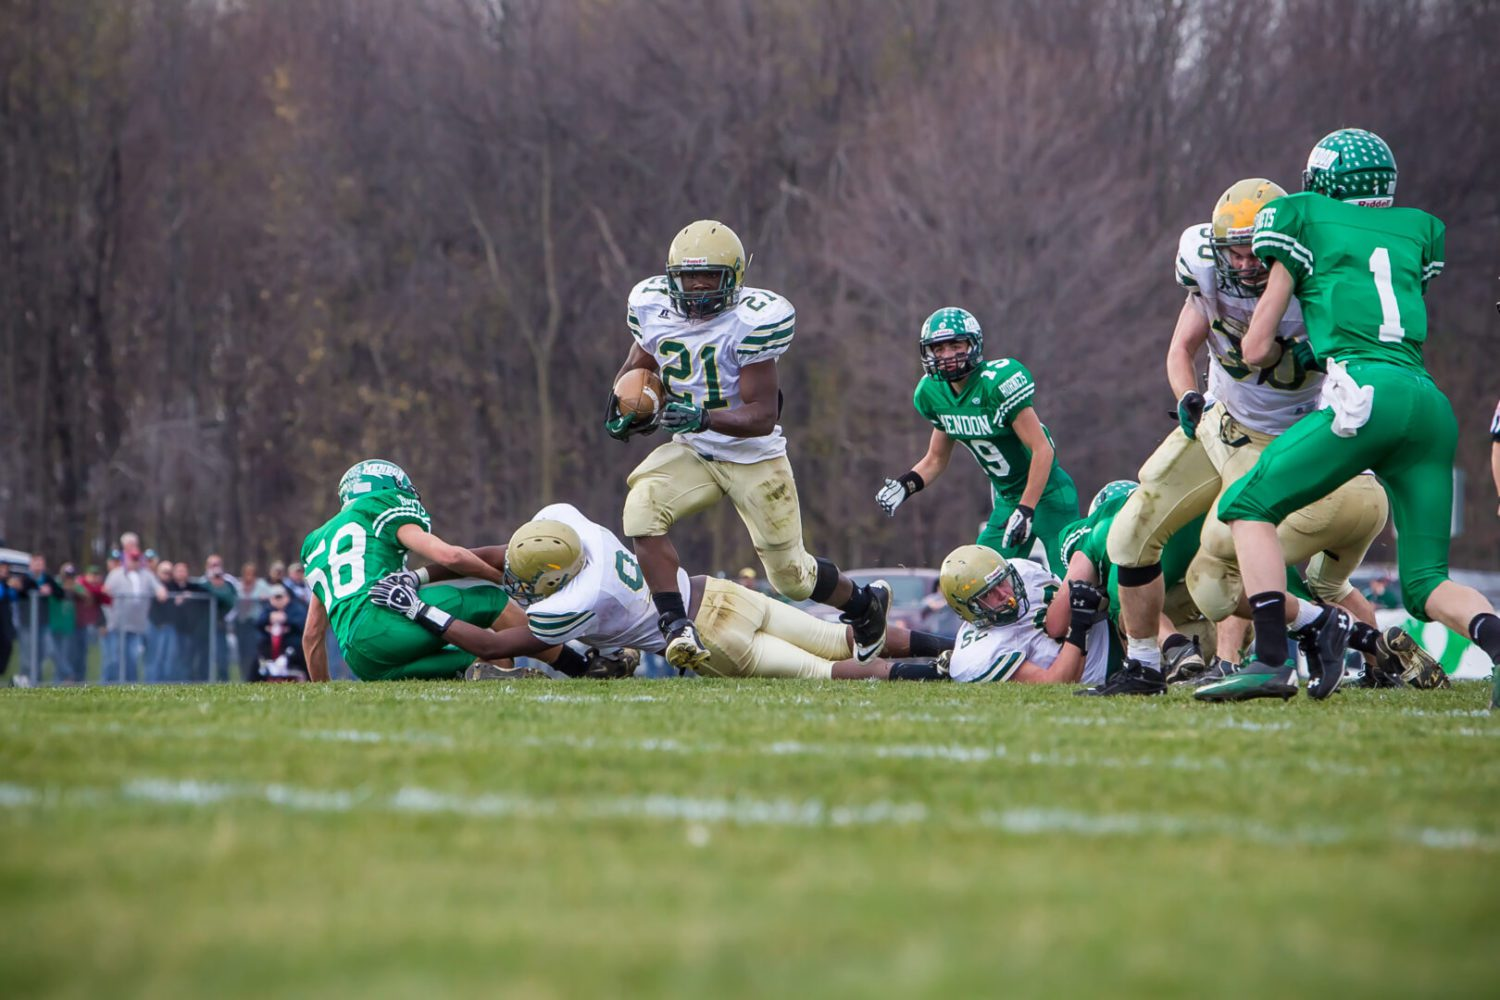 Muskegon Catholic Central downs top-ranked Mendon [VIDEO]